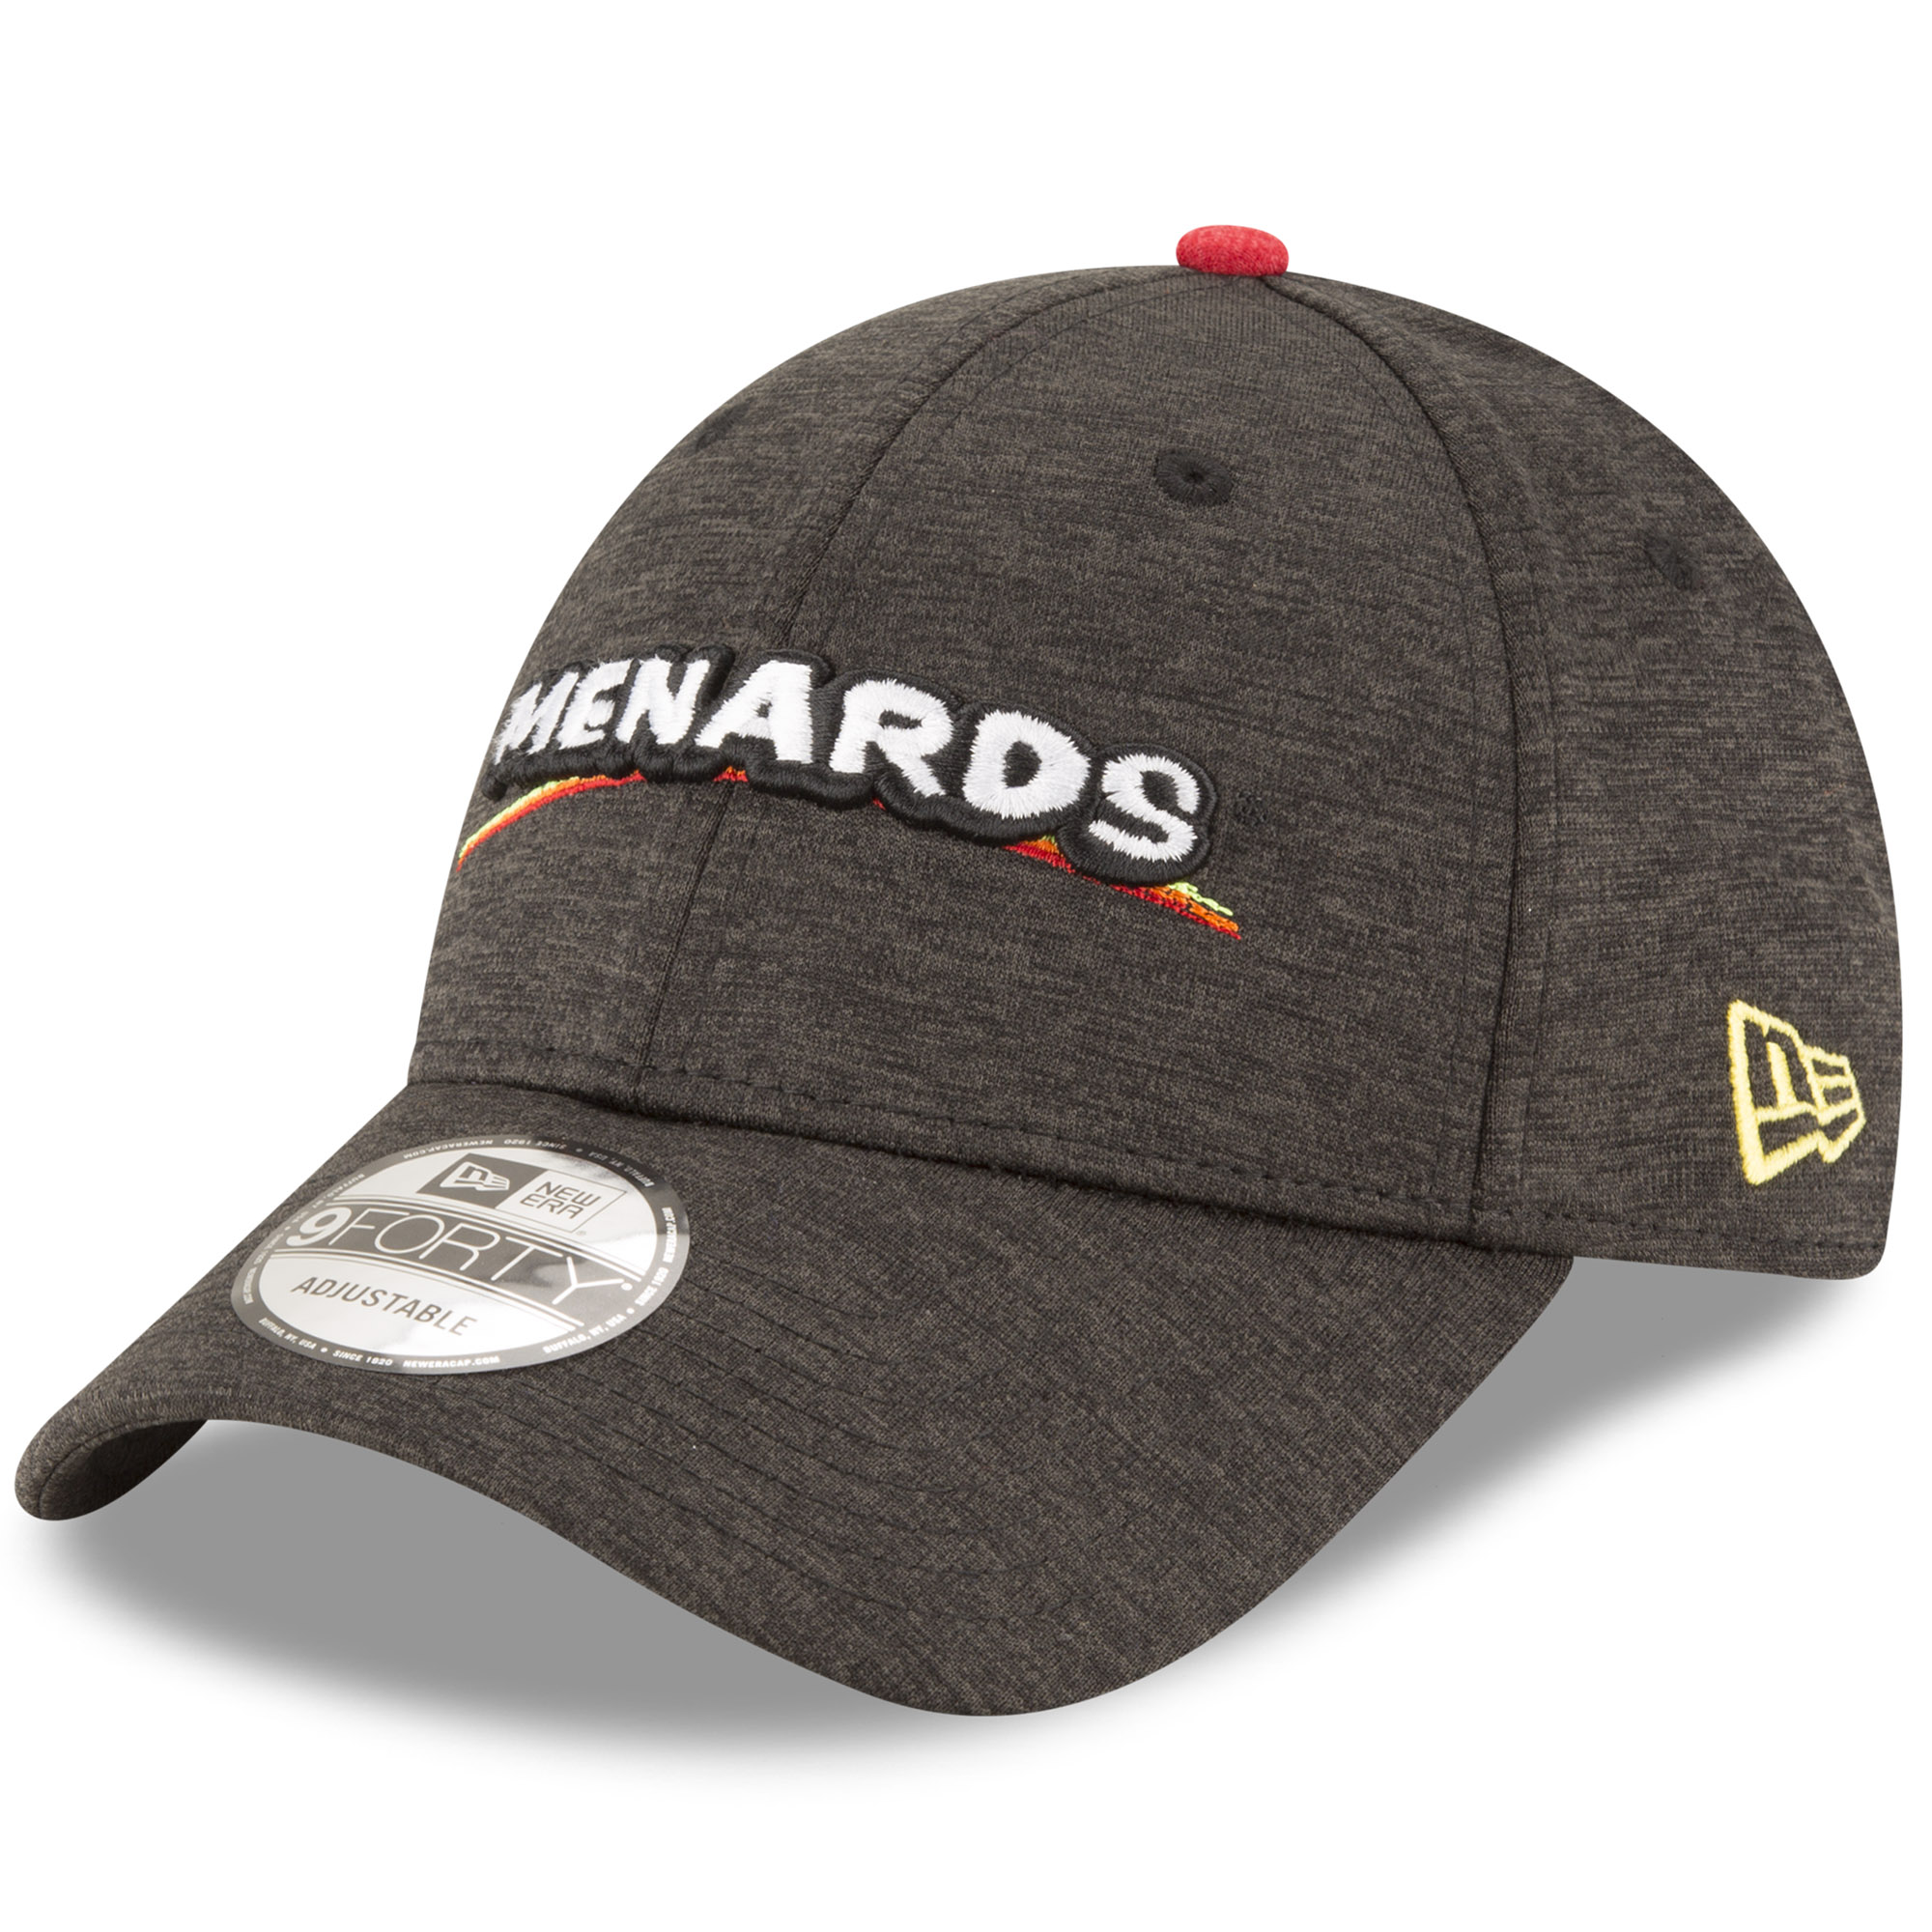 Ryan Blaney New Era Menard's Driver 9FORTY Adjustable Hat - Black - OSFA